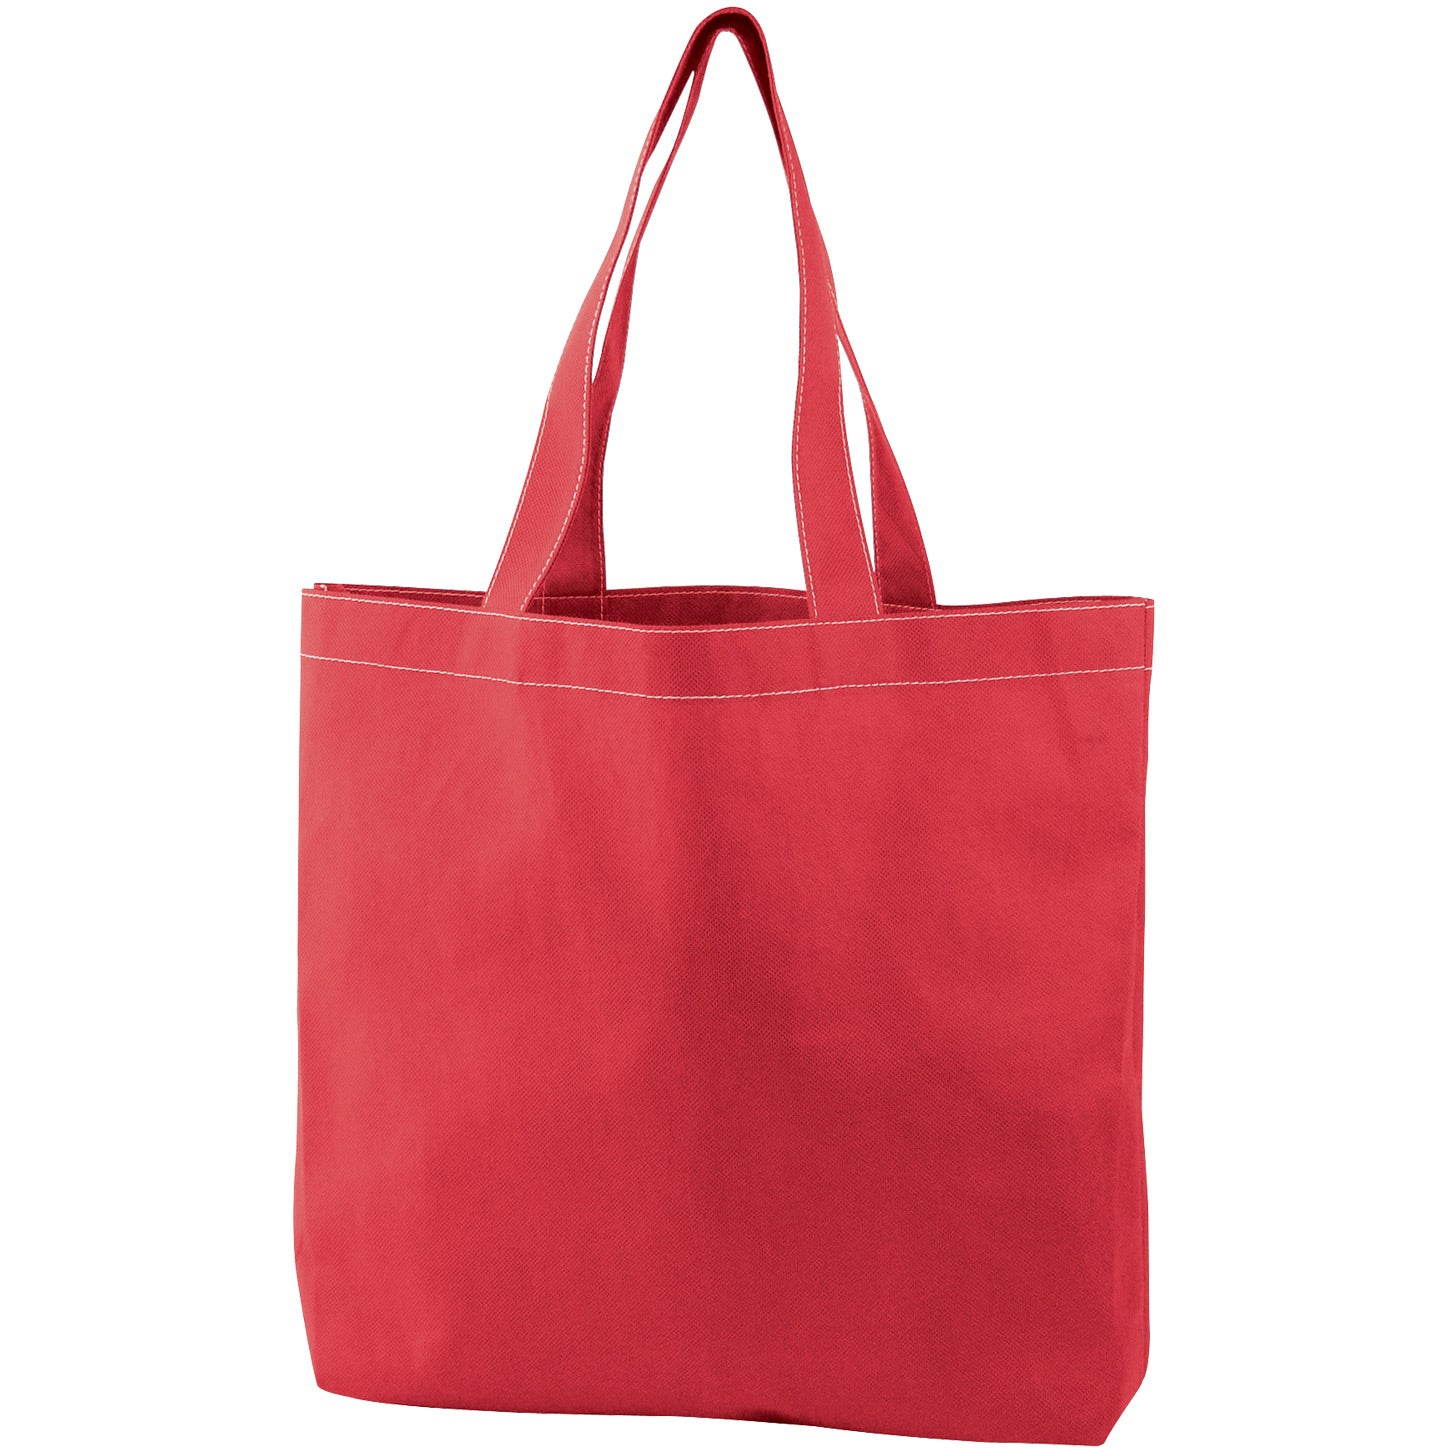 Promotional Featherweight Tote Bag with Custom Logo for $1.50 Ea.